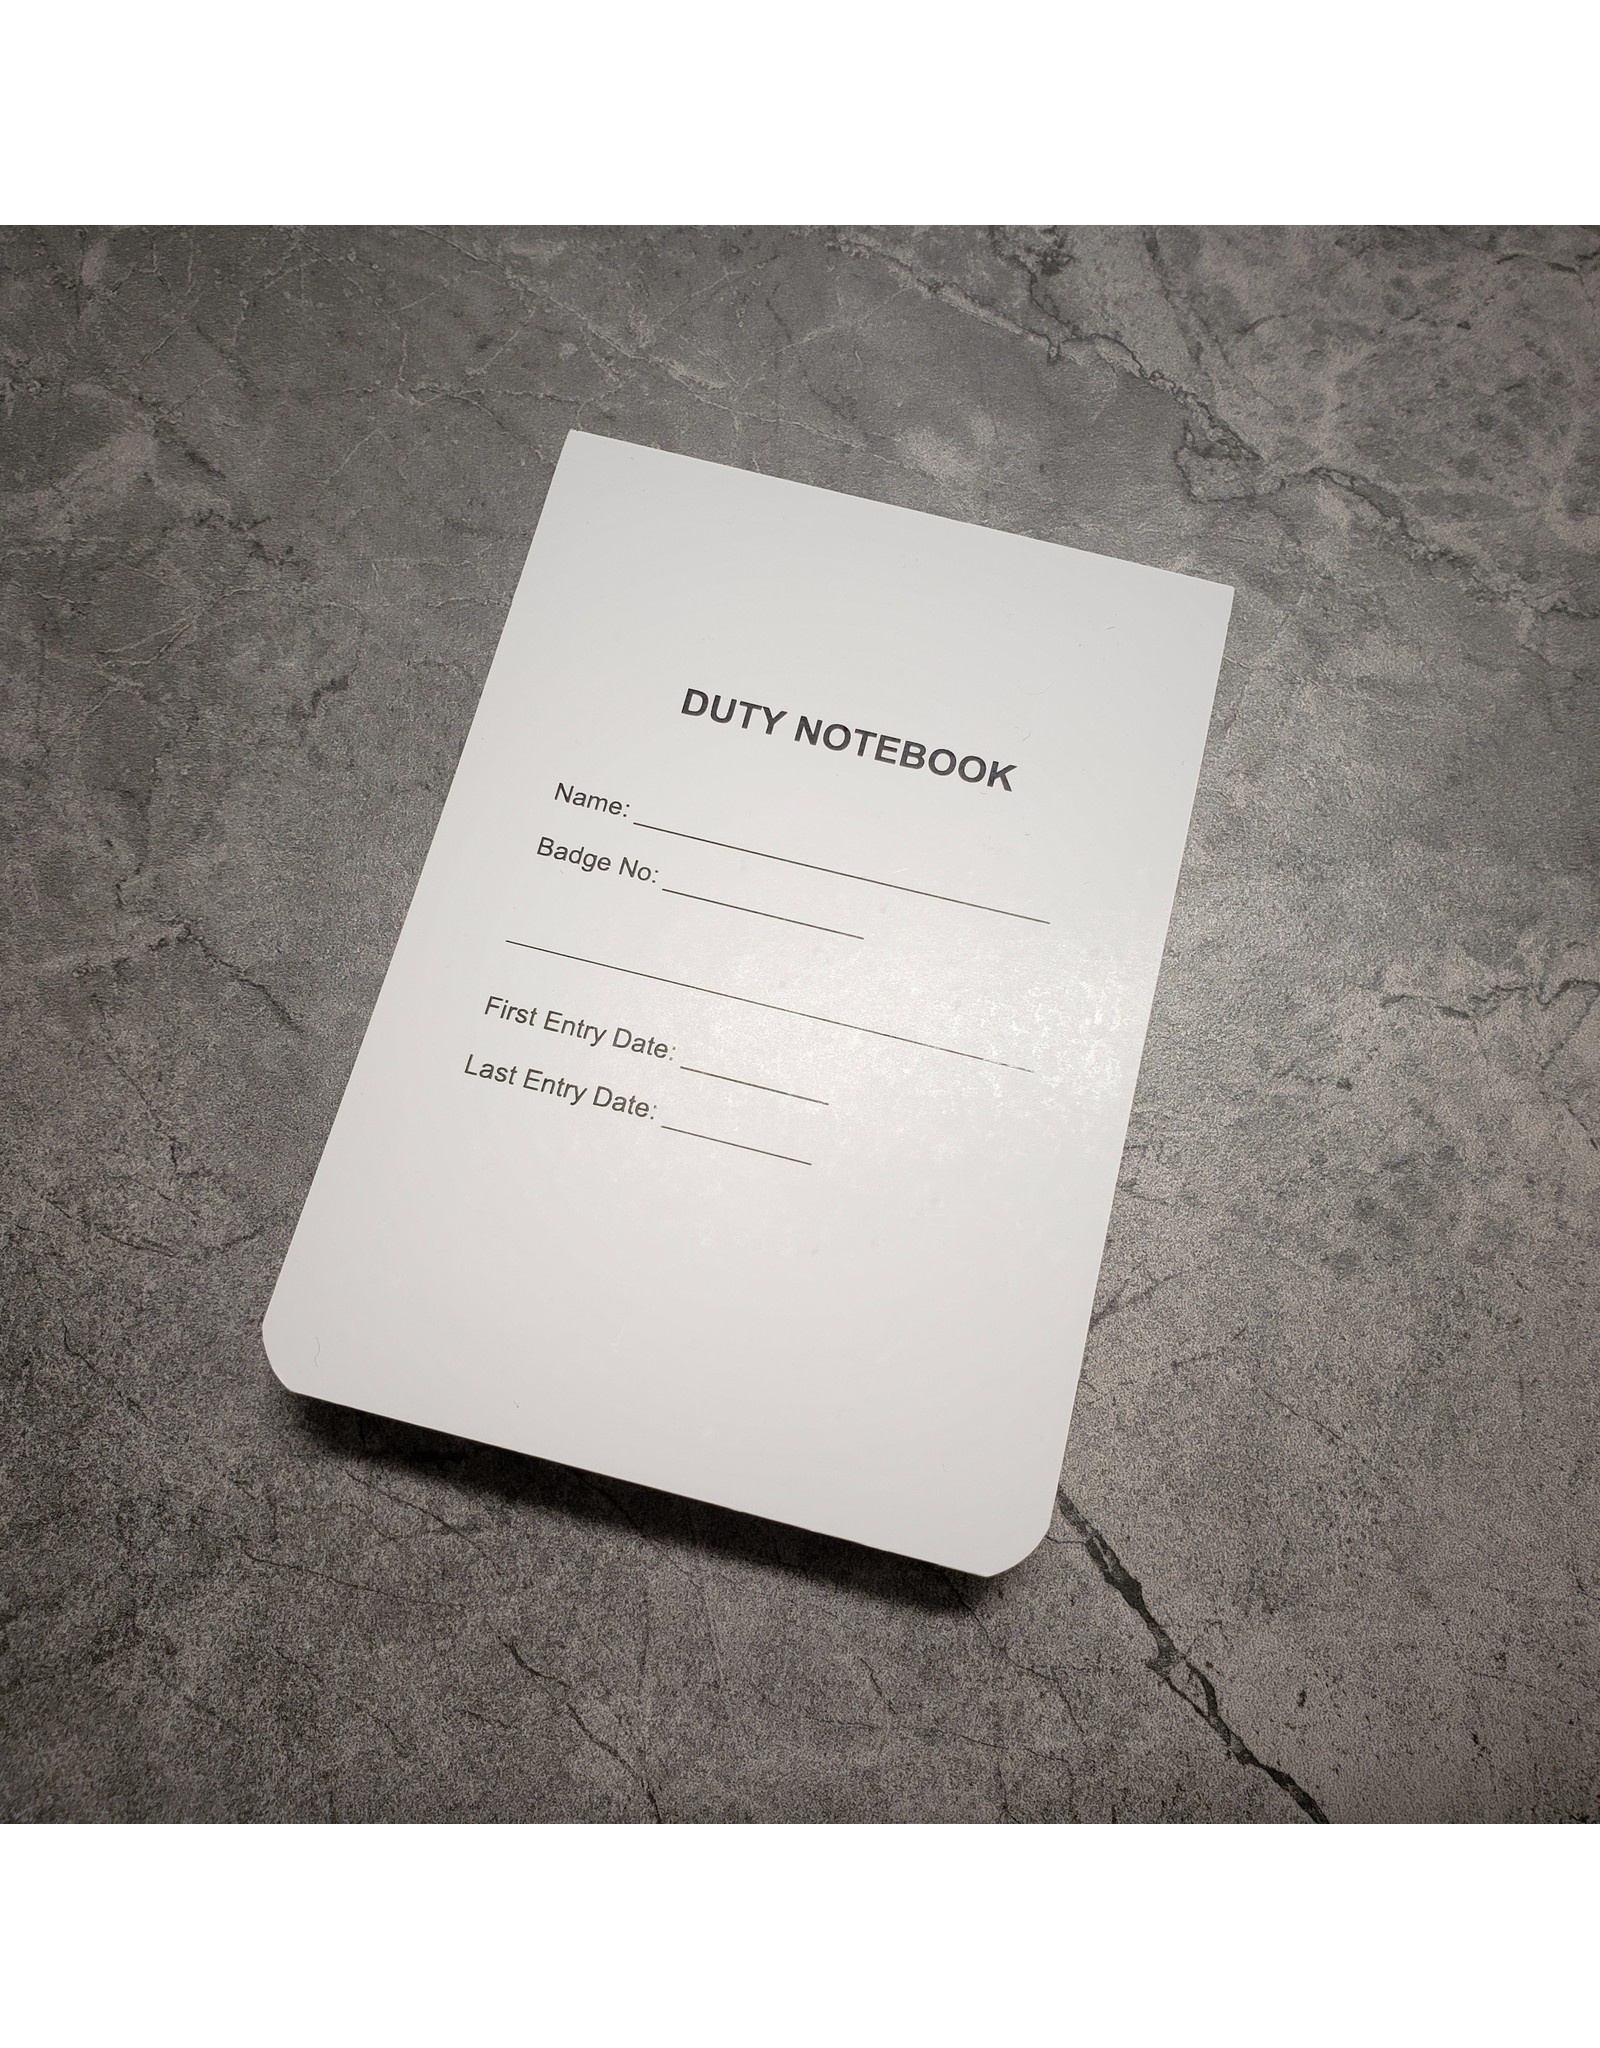 DUTYNOTEBOOKS DUTY NOTEBOOK 3.5X5.5""